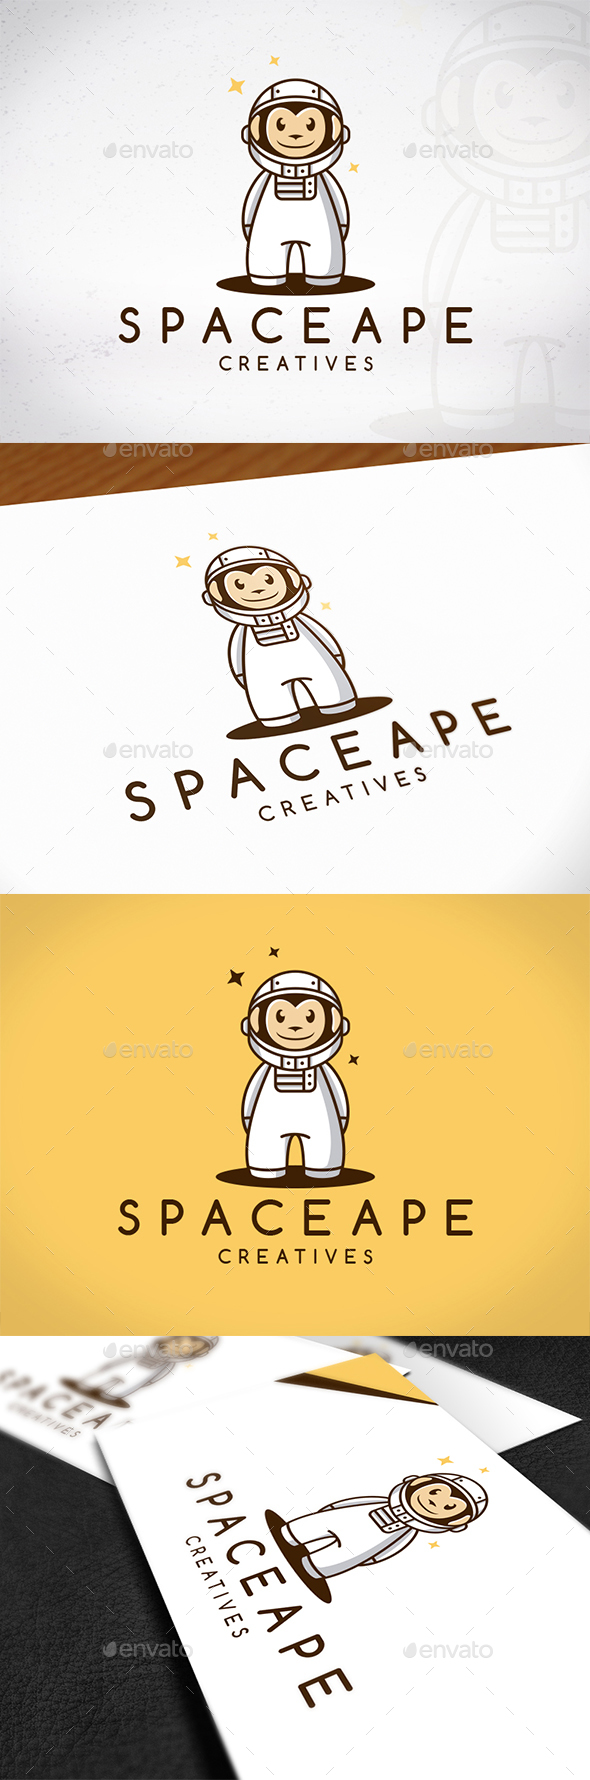 Space Ape Logo Template - Animals Logo Templates